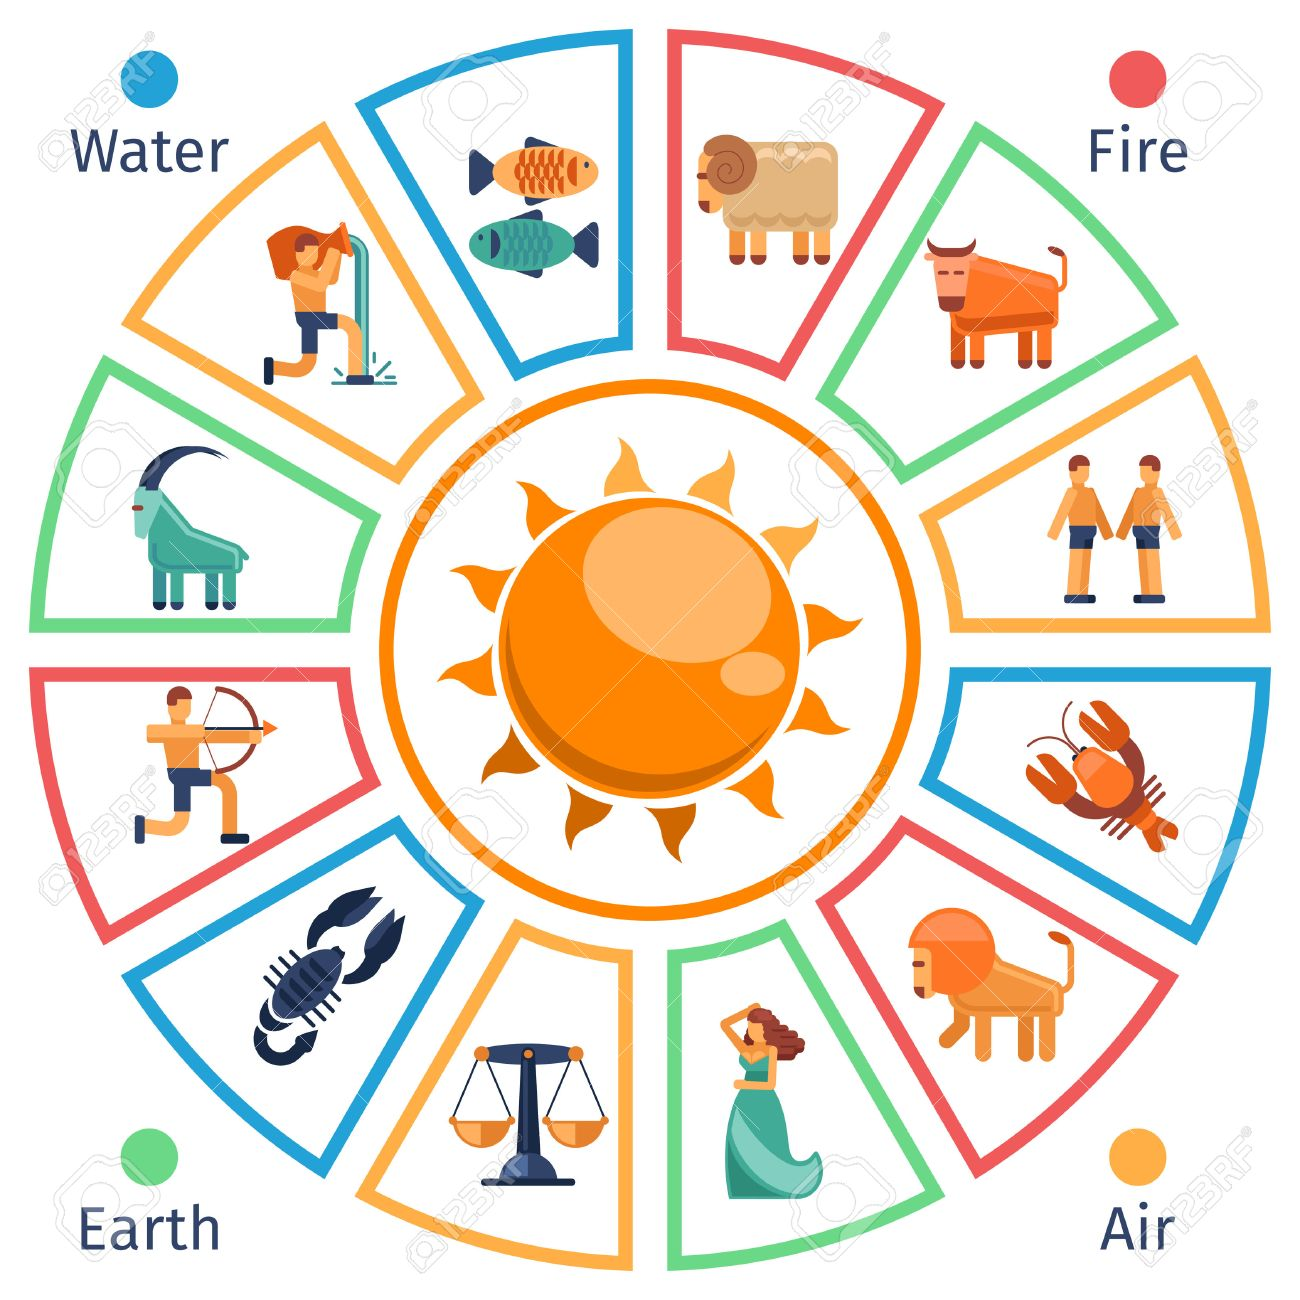 Astrological circle with zodiac signs in flat style pisces and astrological circle with zodiac signs in flat style pisces and aquarius horoscope symbols aries buycottarizona